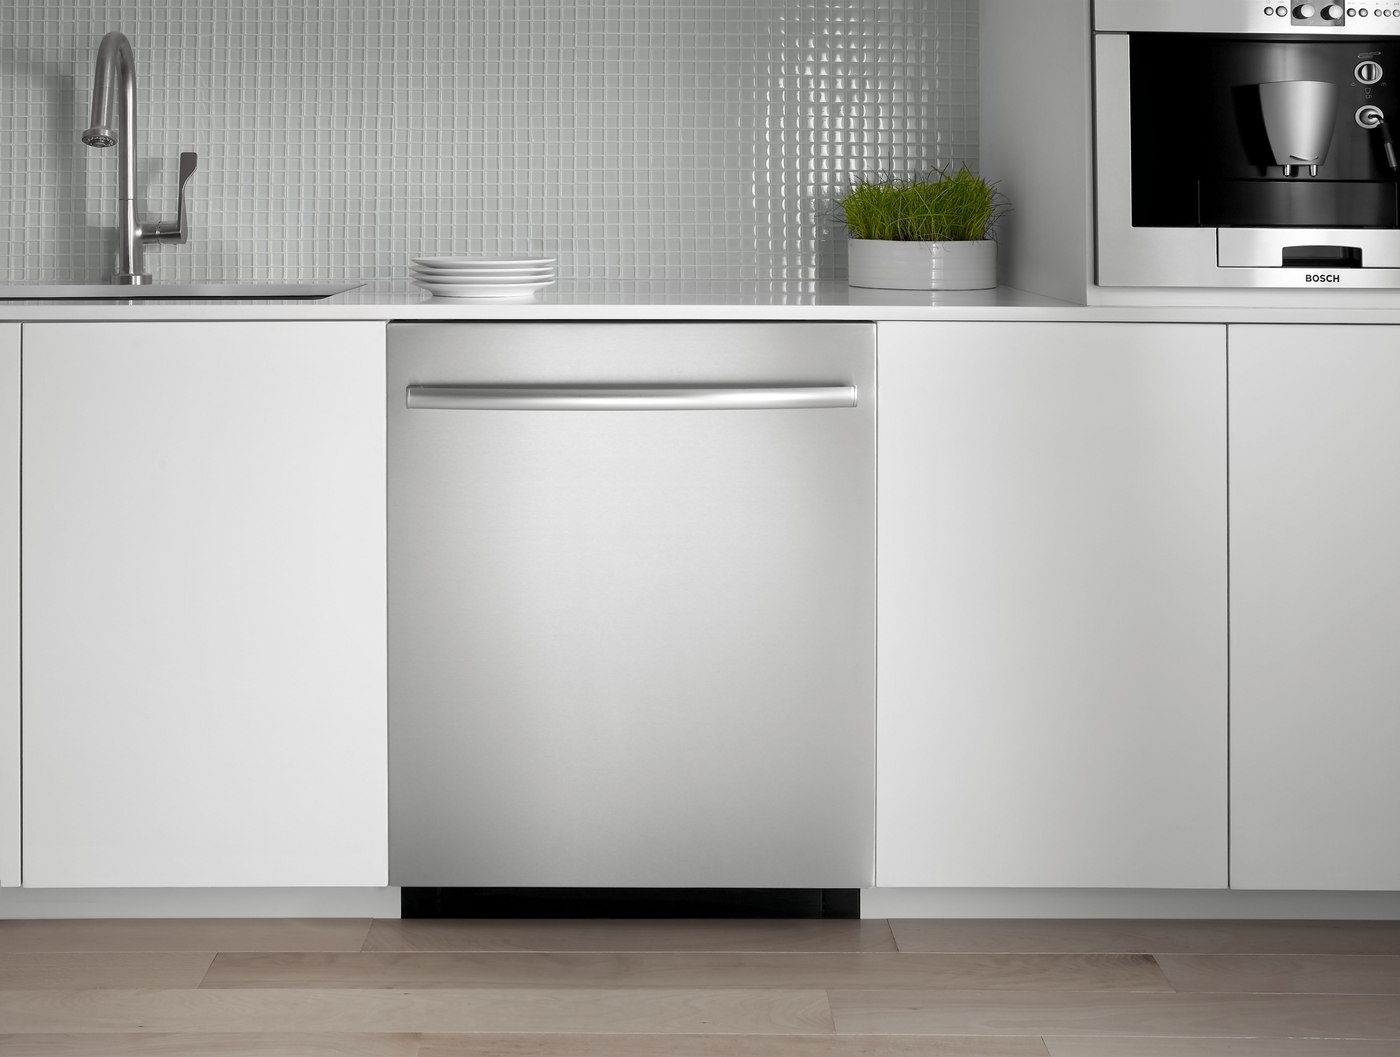 American Style vs. European Style Dishwashers (Reviews/Ratings)